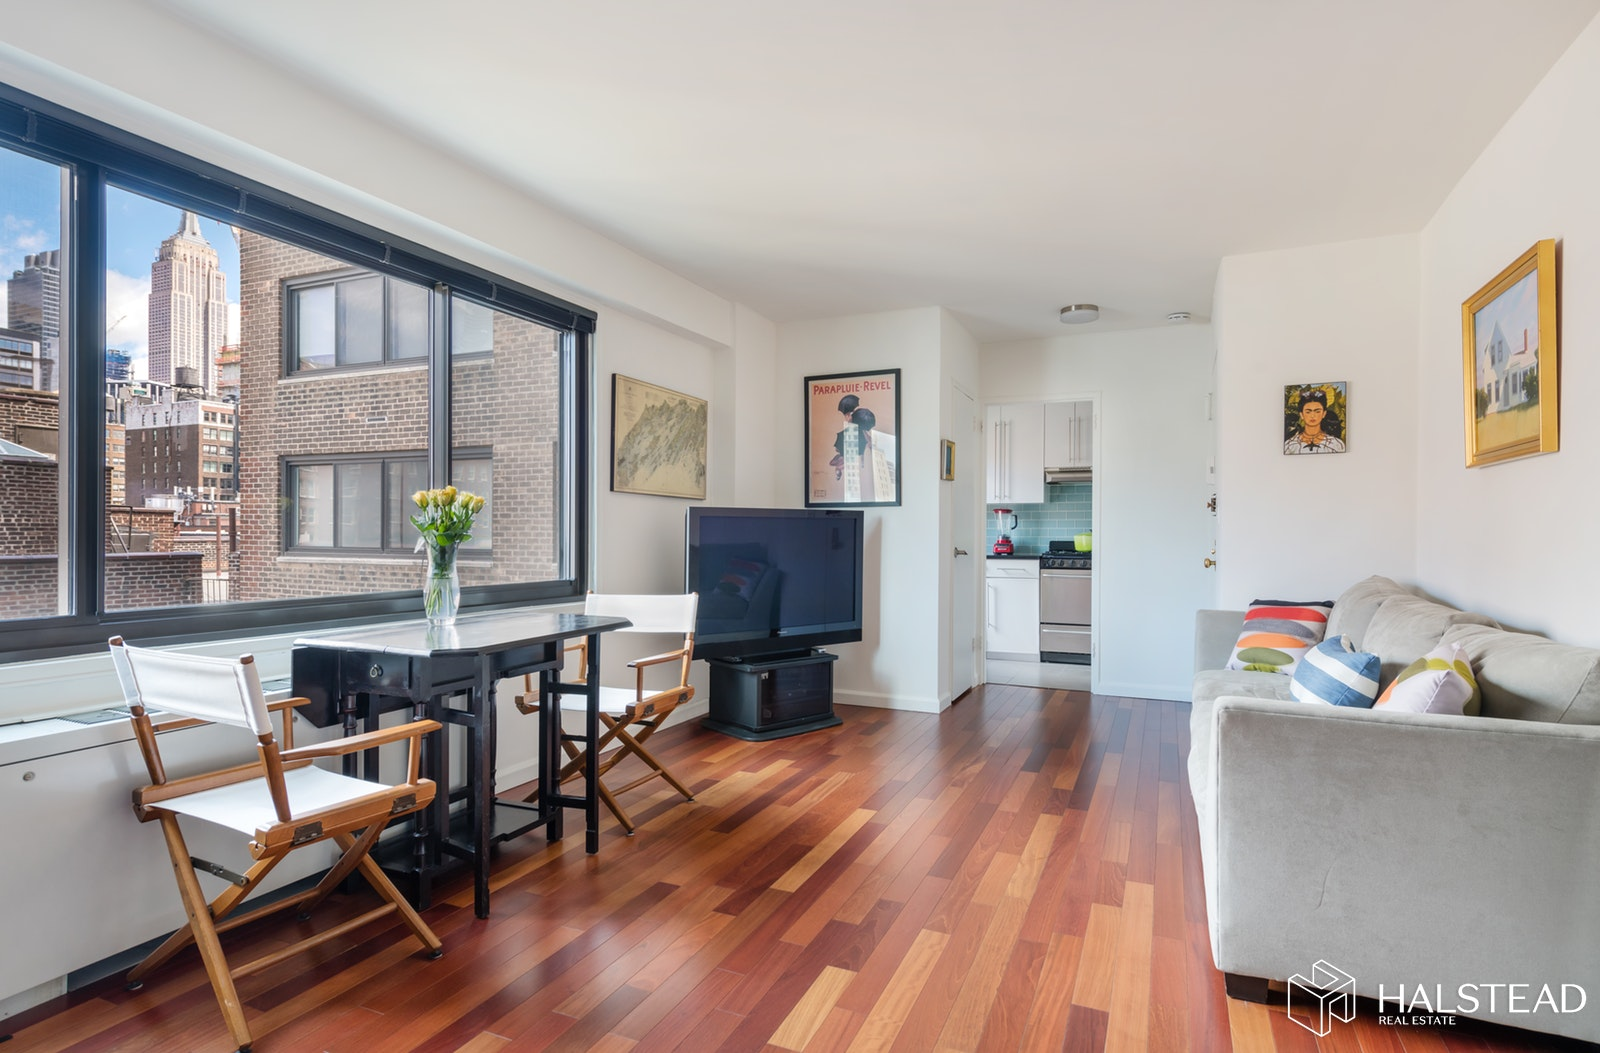 201 West 21st Street 8k, Chelsea, NYC, 10011, $486,000, Sold Property, Halstead Real Estate, Photo 2